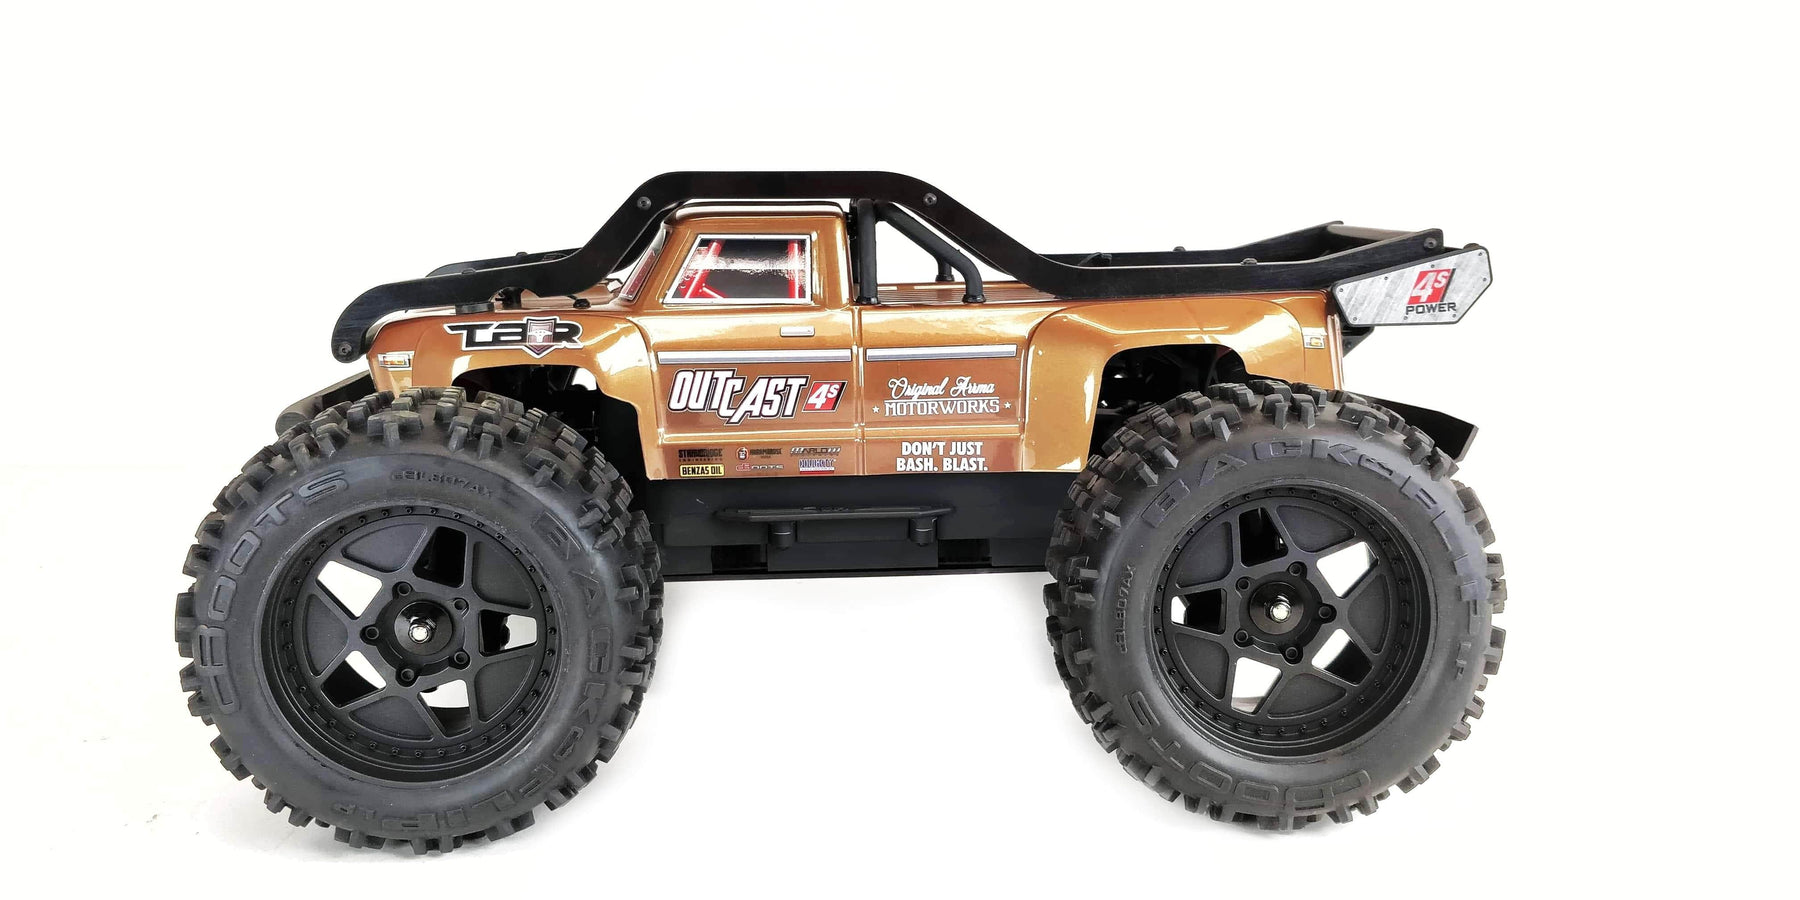 10118 - TBR R1 'EXO Cage' External Roll Cage - Arrma Outcast 4S